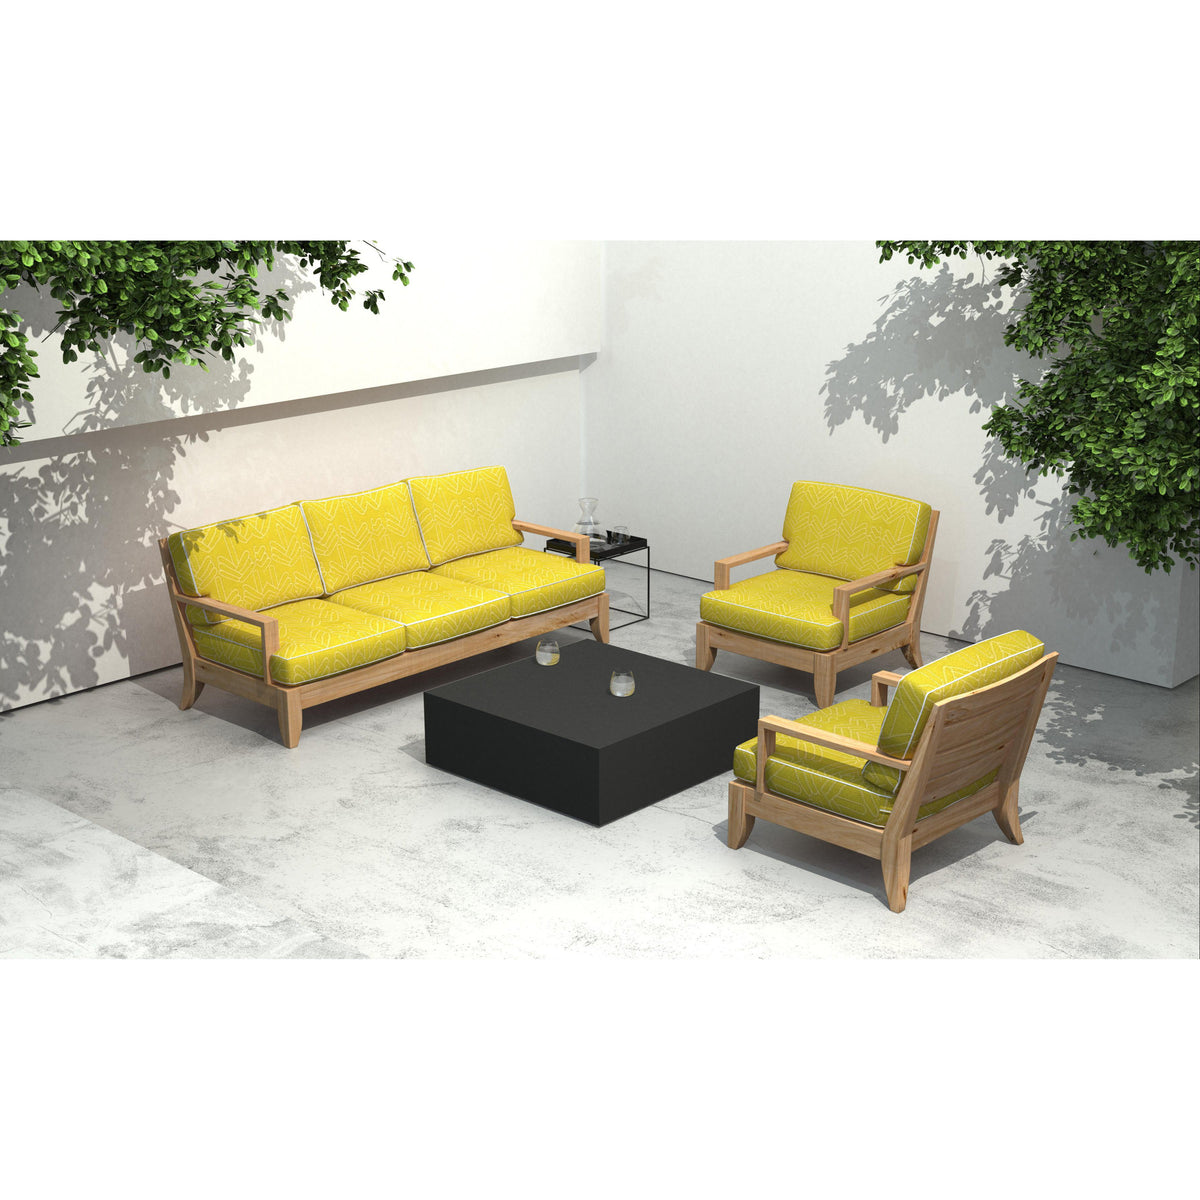 Bloc L4 Concrete Coffee Table - Outdoor Living Essentials